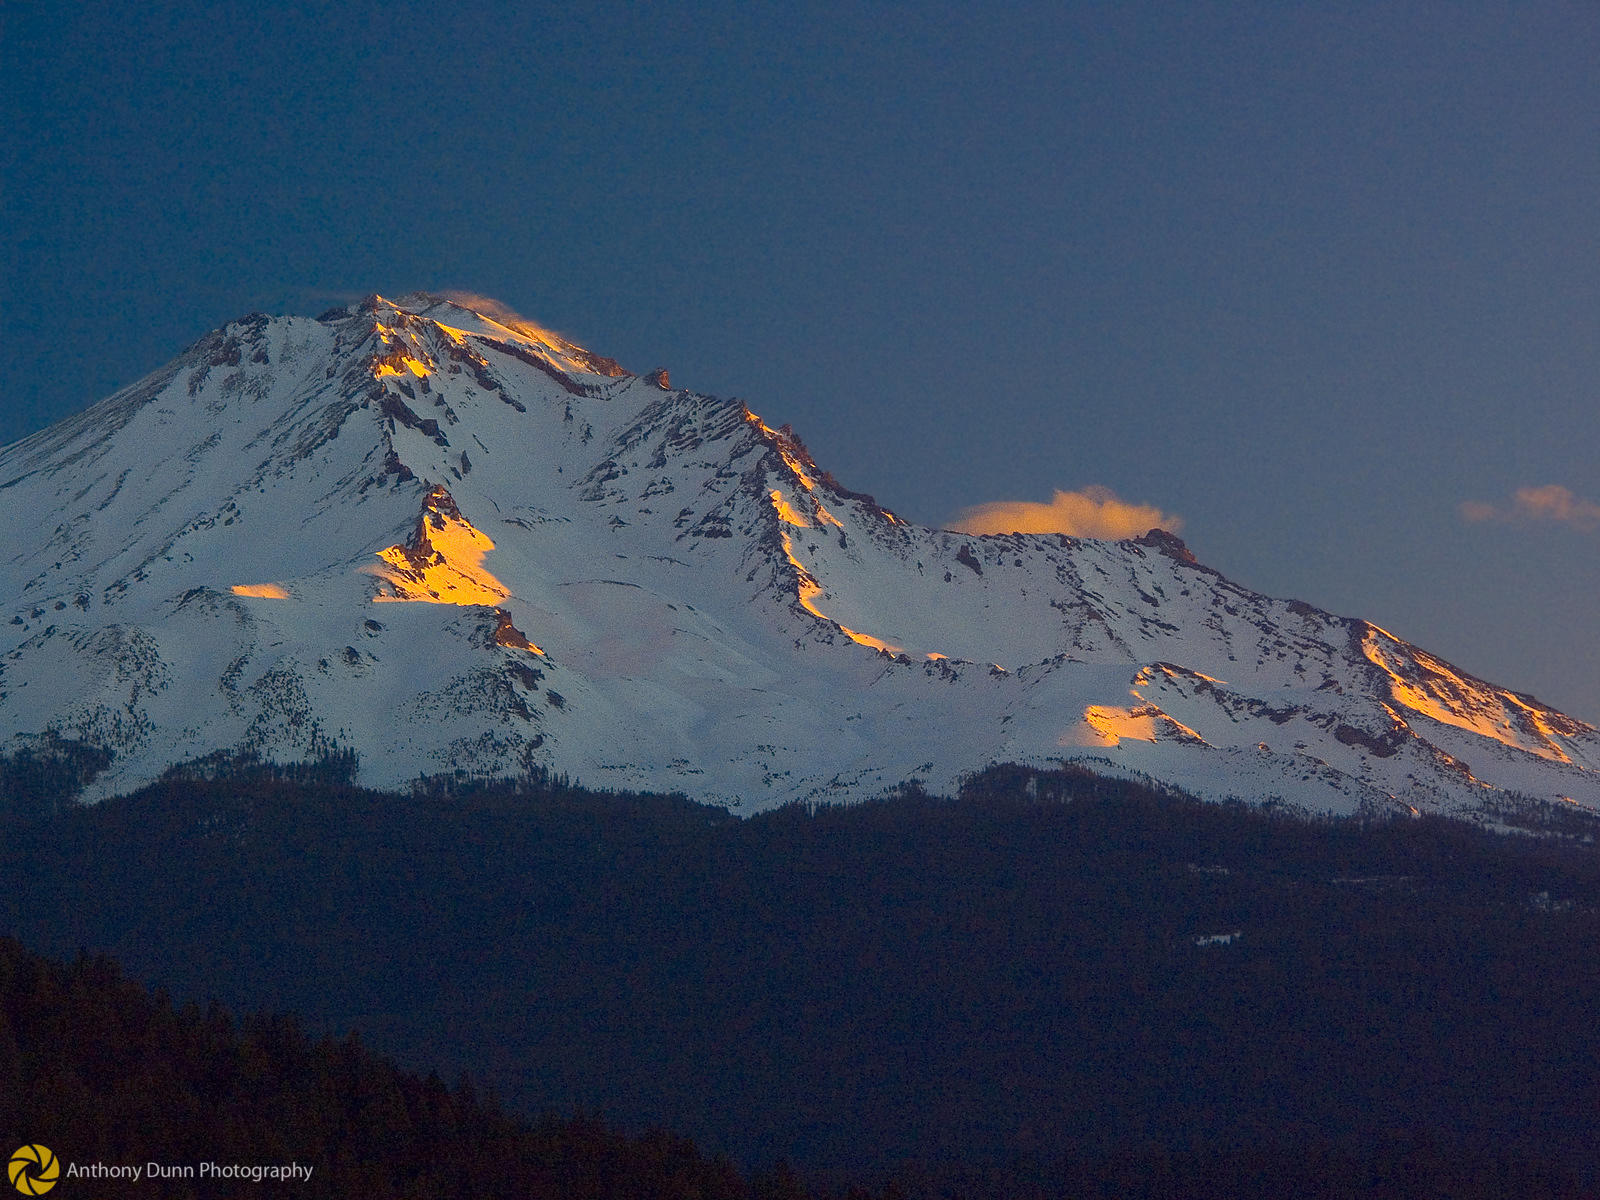 Sunrise on Mt. Shasta #1